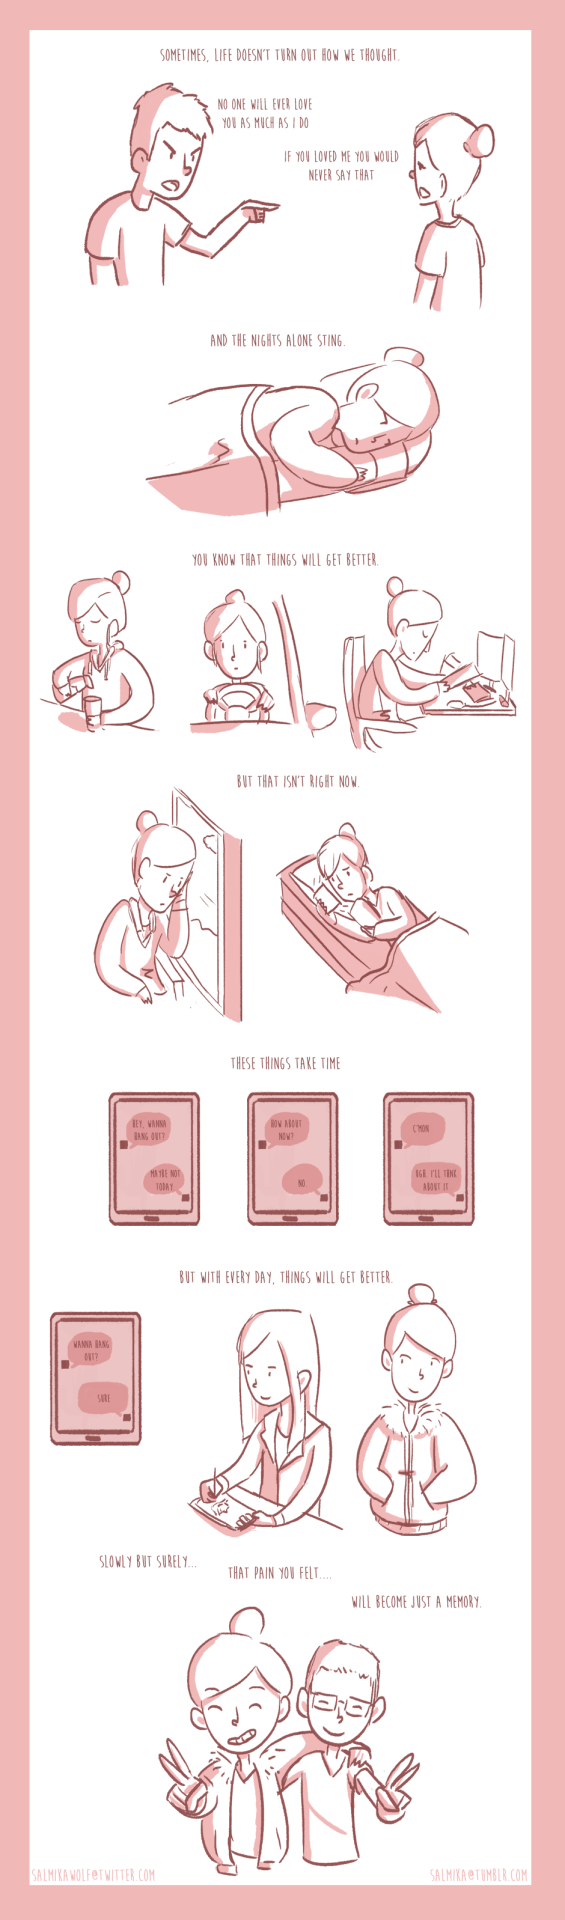 #141 is a comic about life and stuff